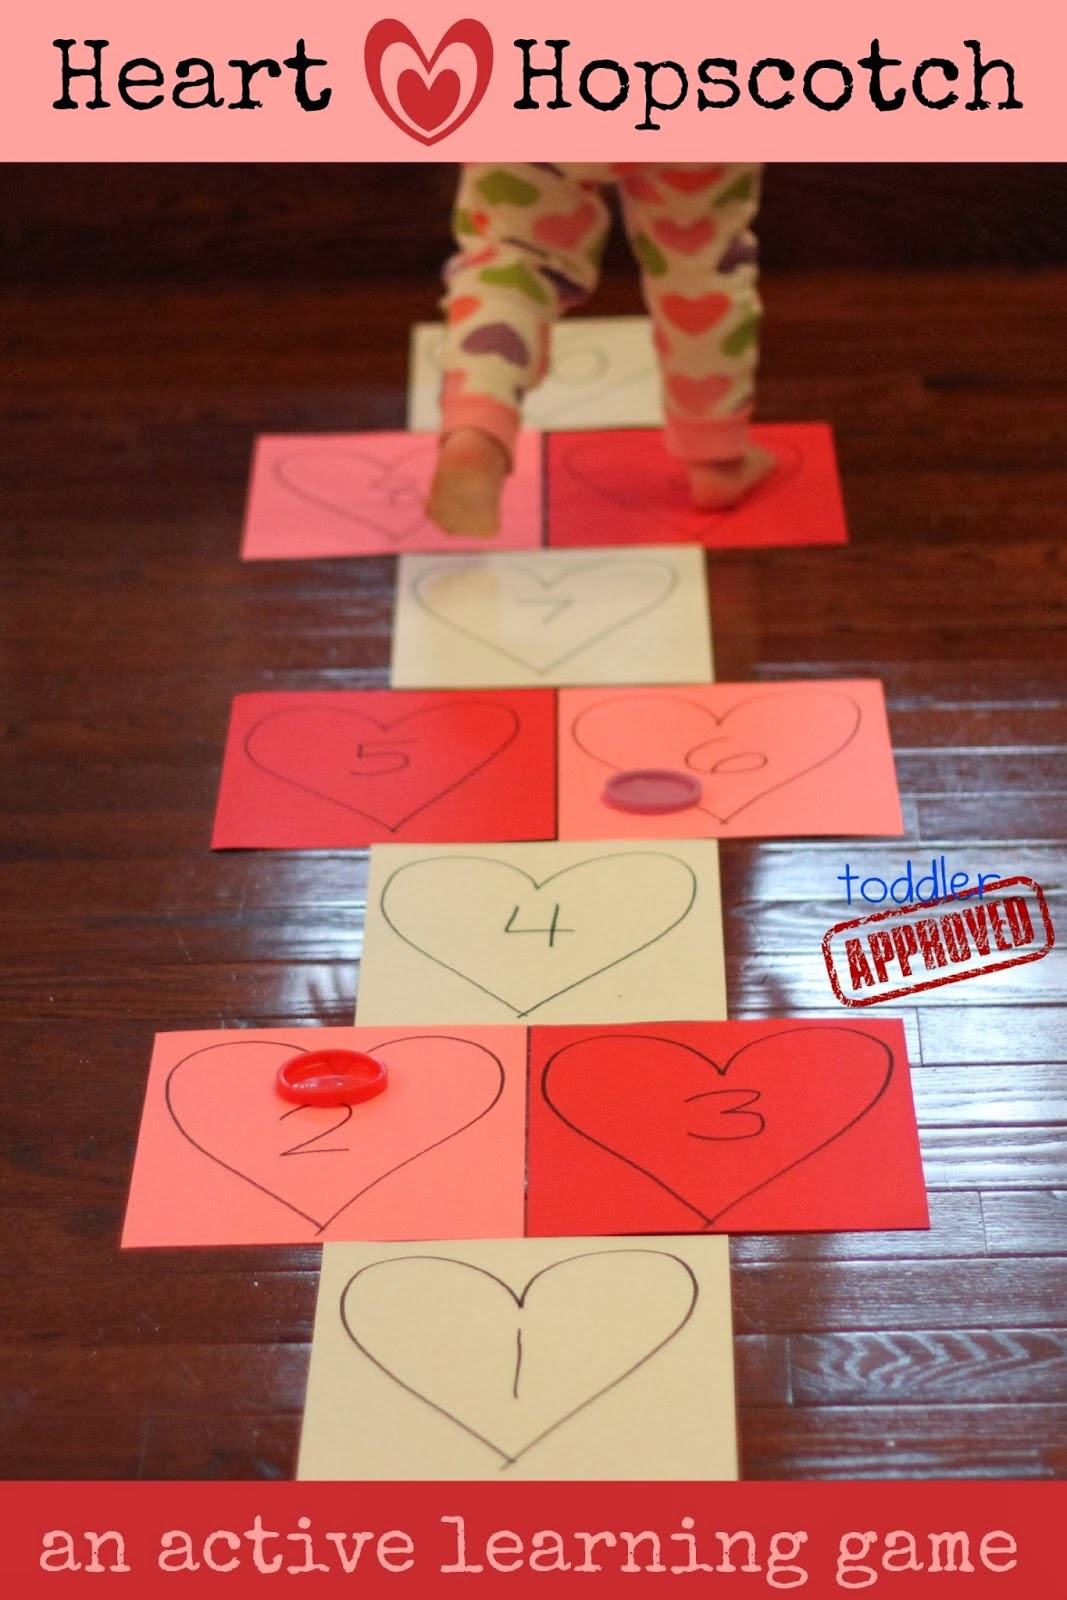 Toddler Approved!: Heart Hopscotch: An Active Valentine's Day ...